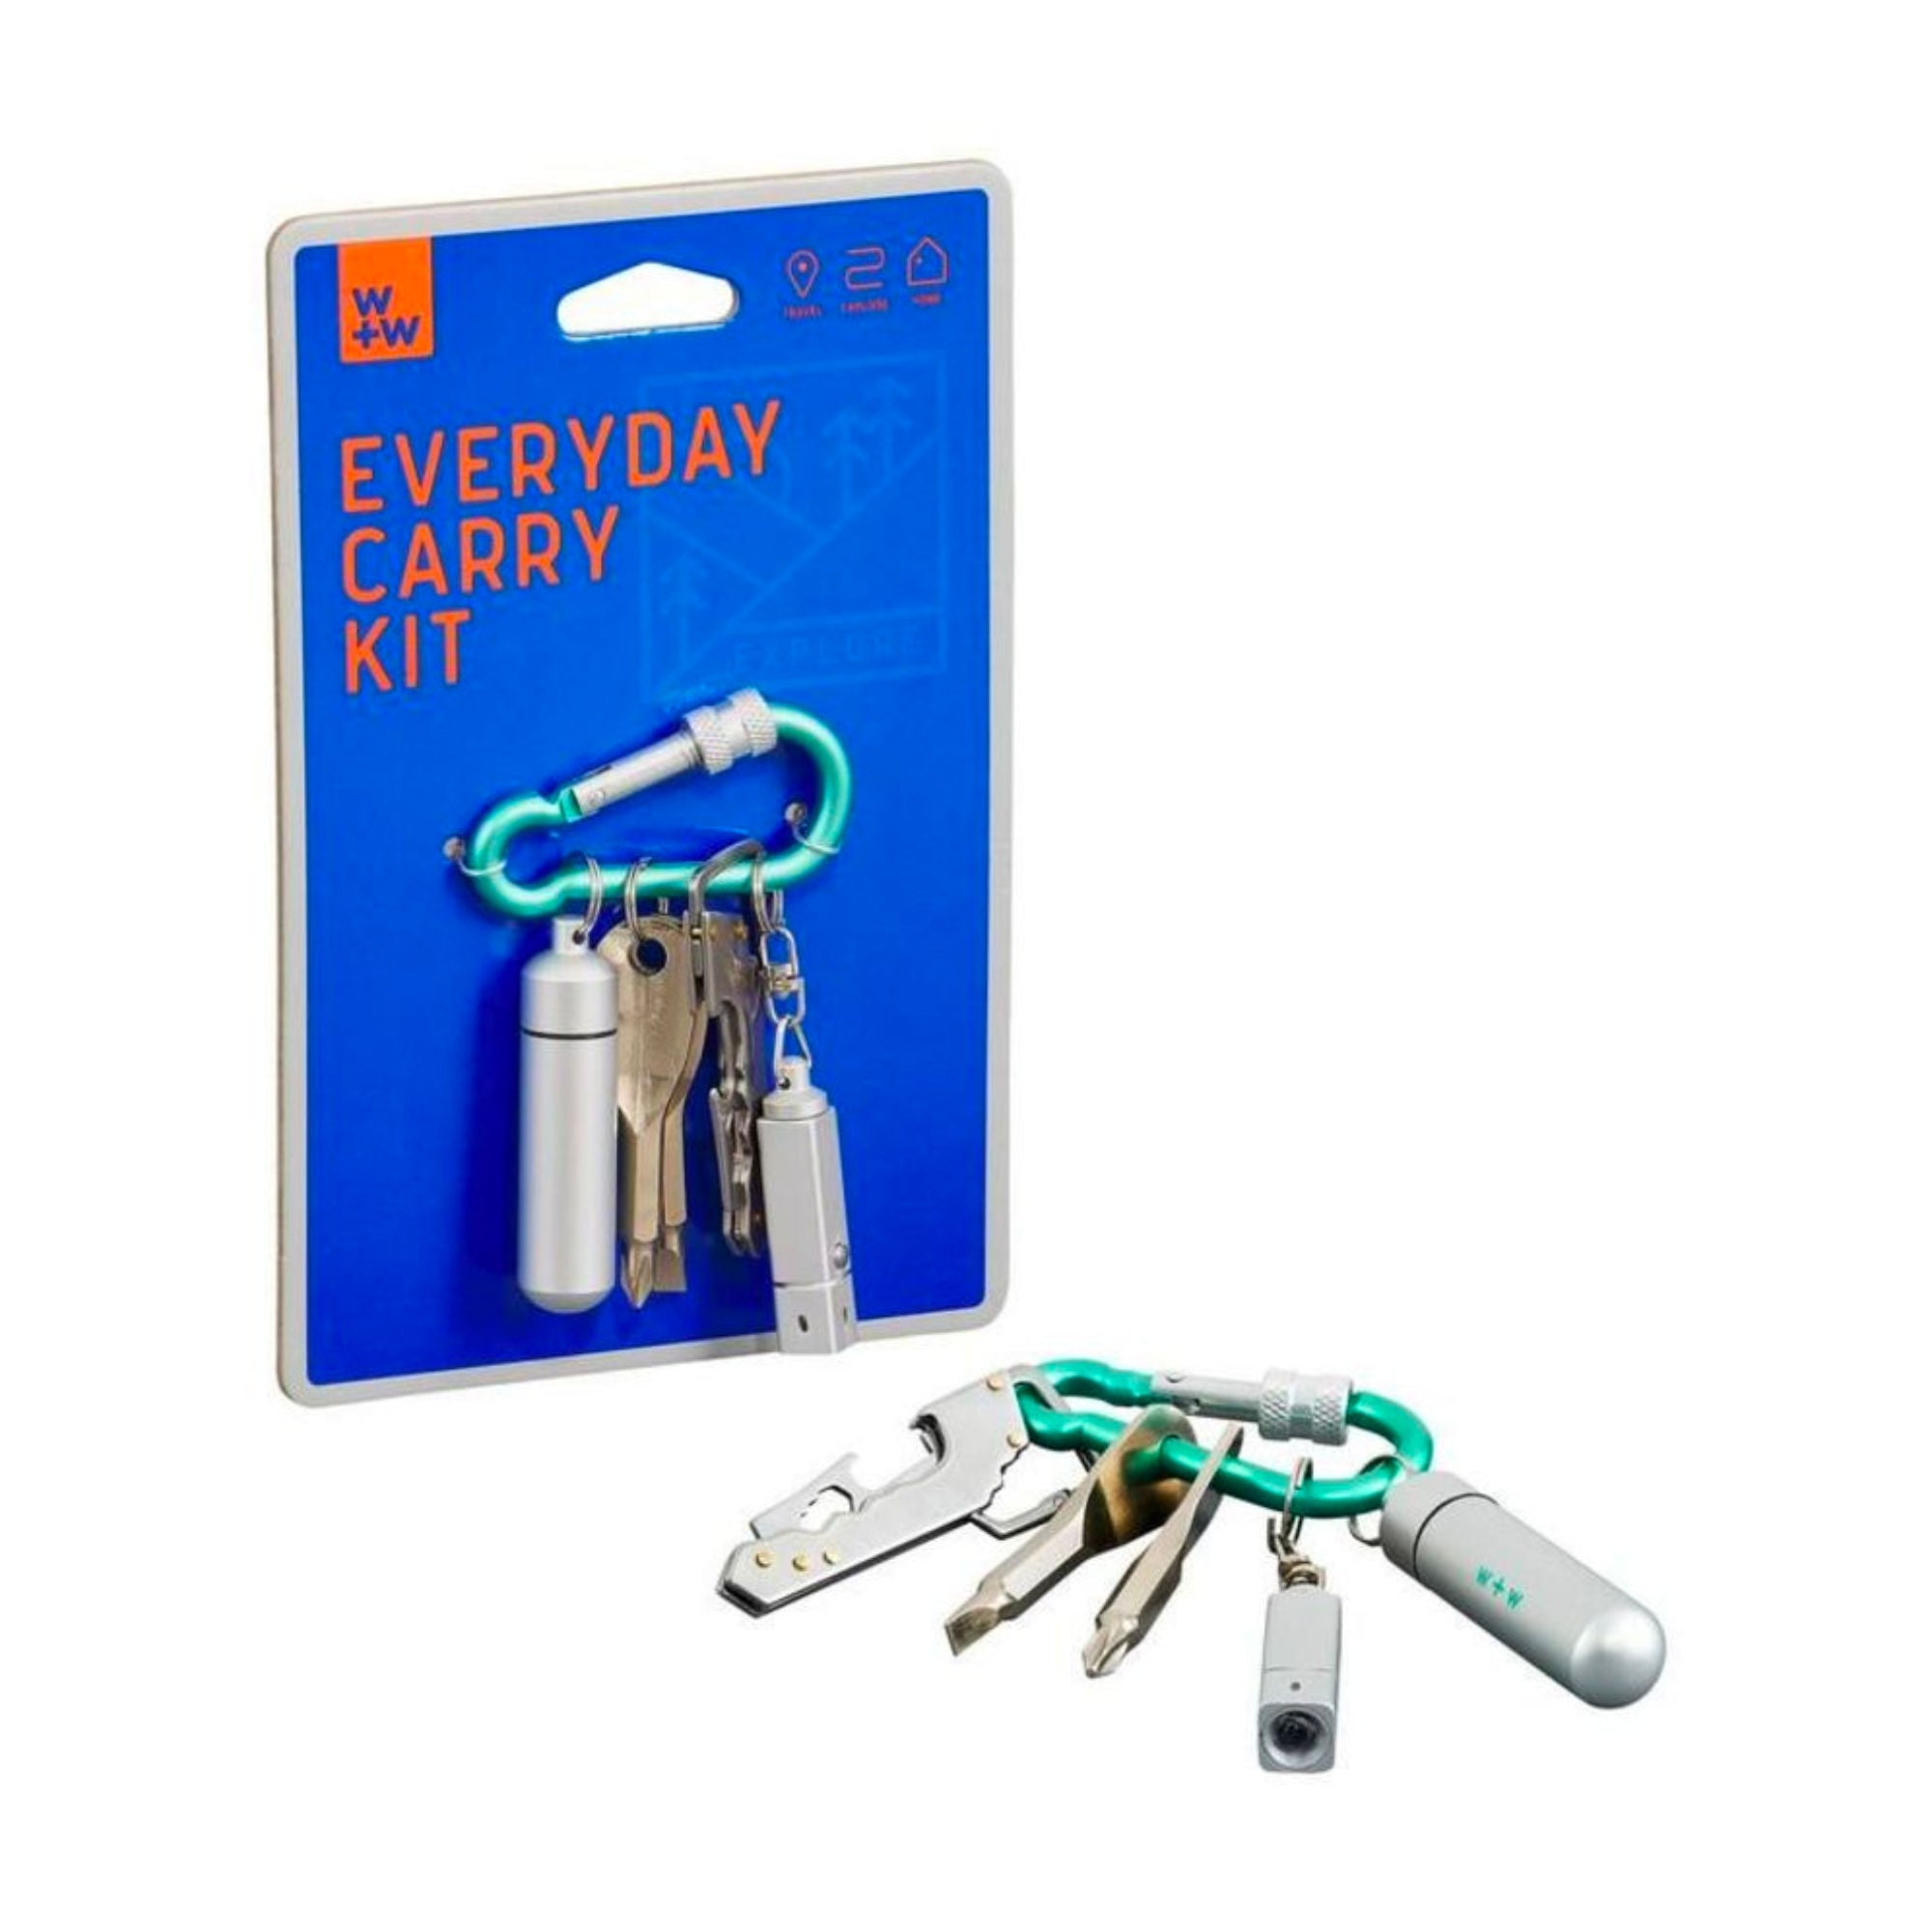 W+W Every Day Carry Kit